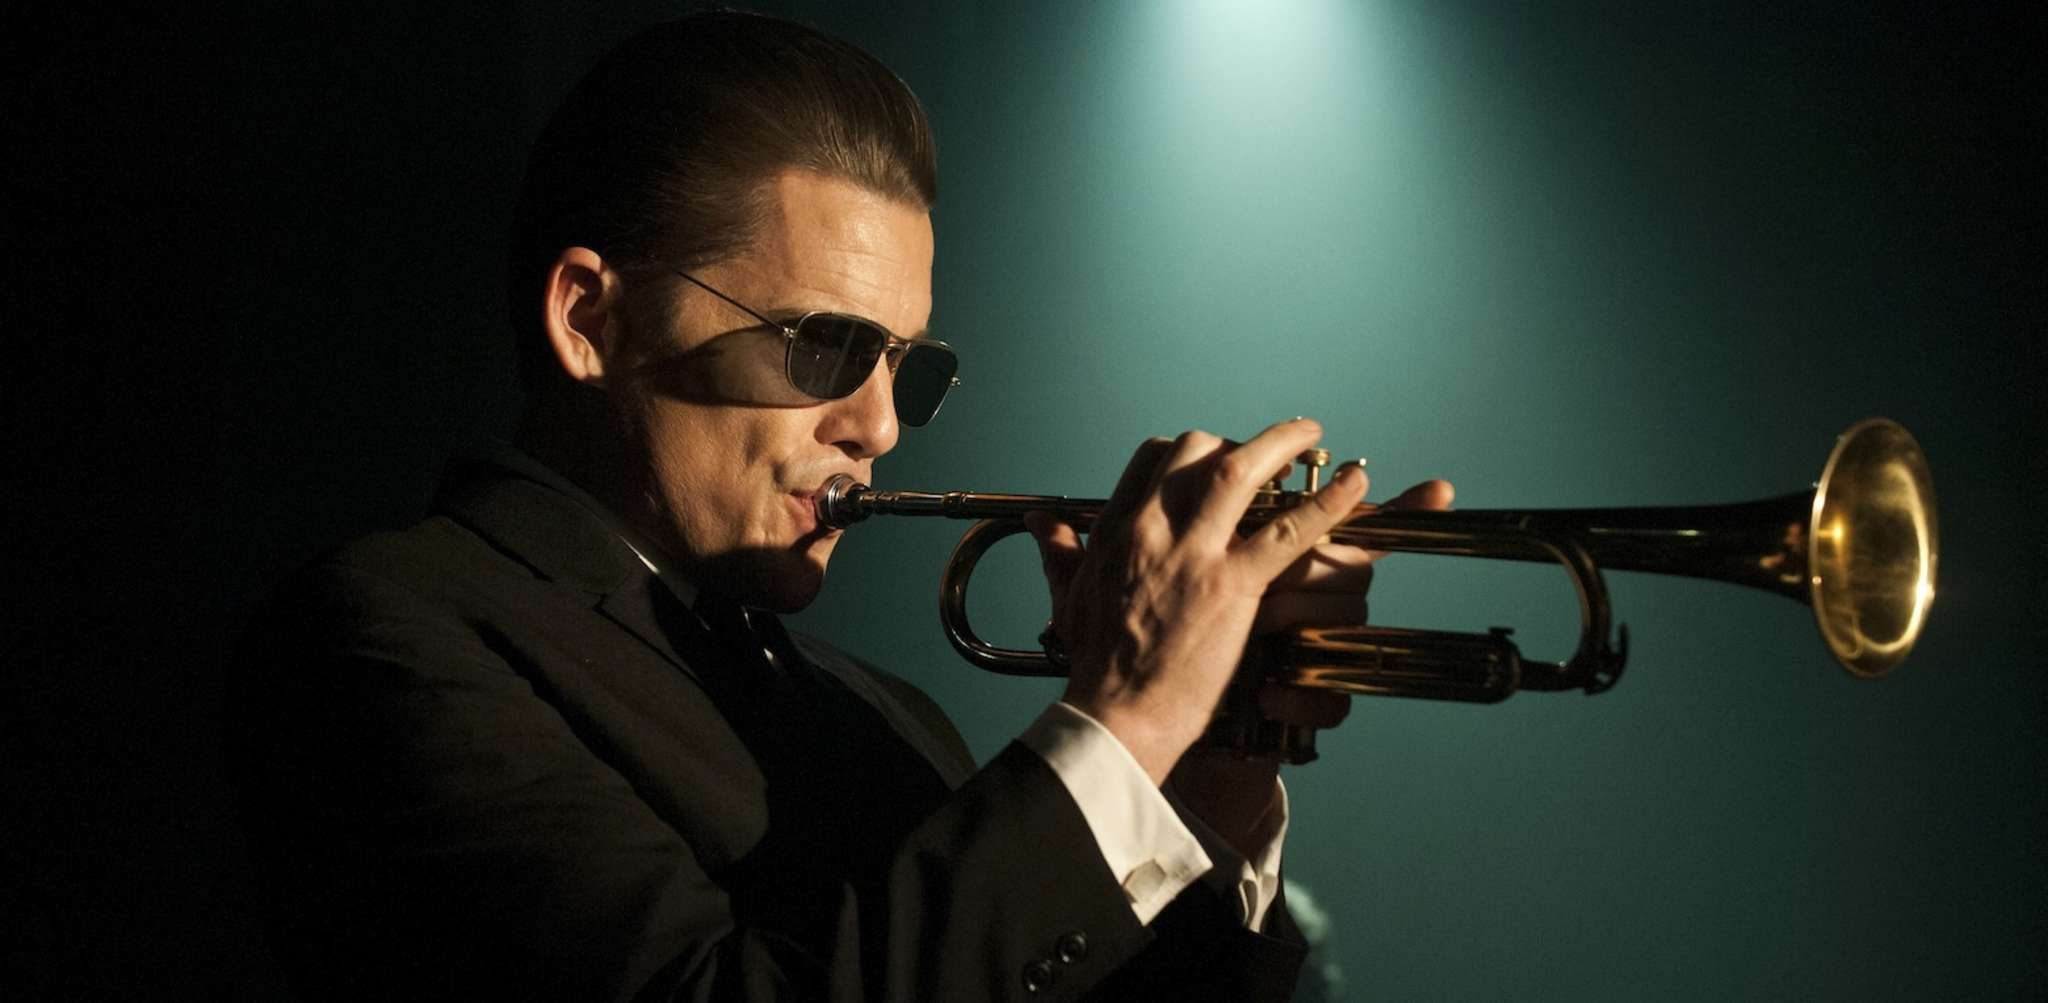 """Hard life: Ethan Hawke gives an immersive performance as 1950s jazz trumpeter and singer Chet Baker in """"Born to Be Blue."""""""